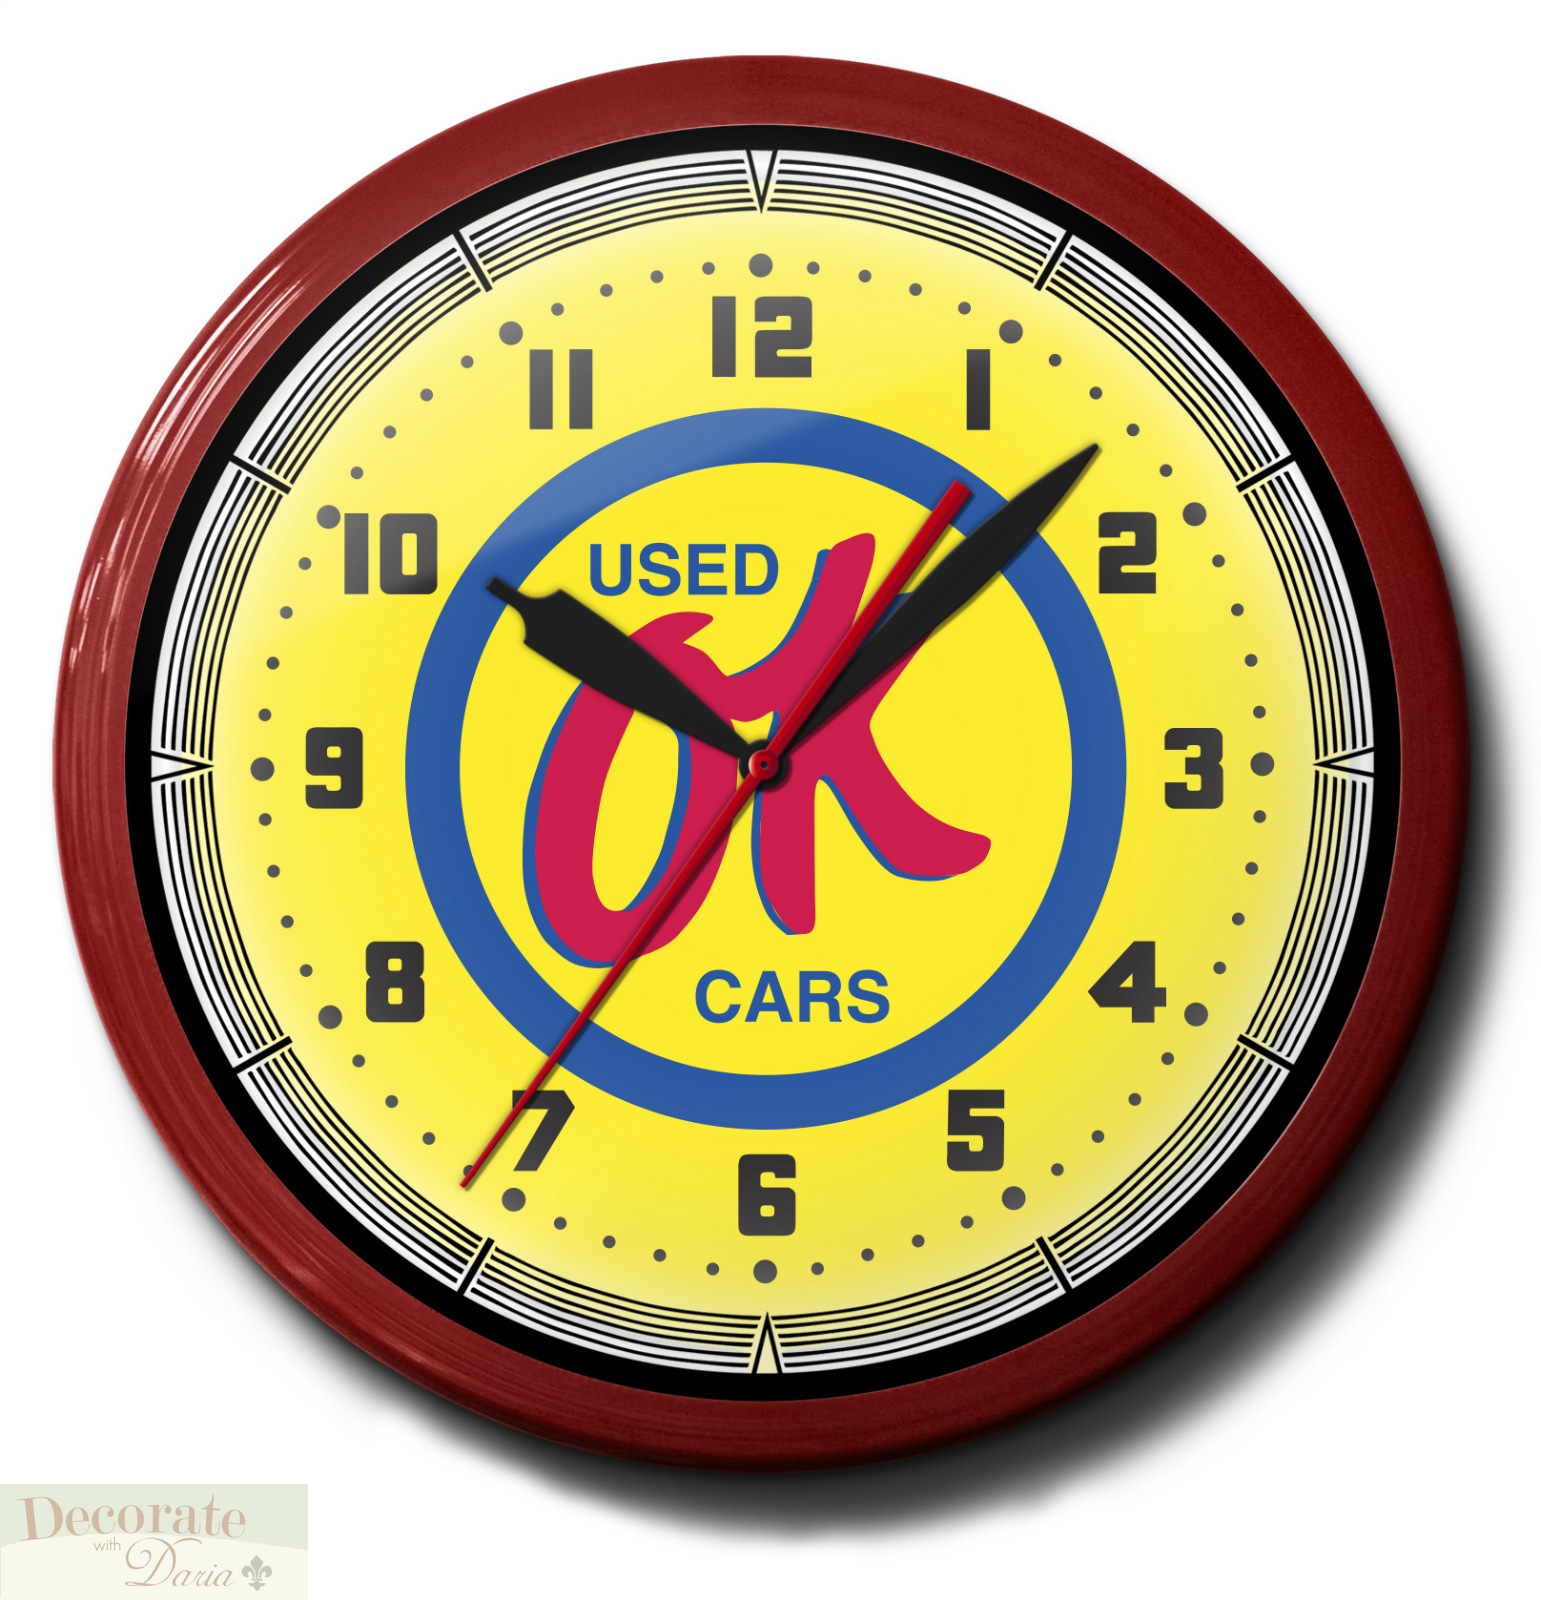 OK USED CARS Neon Wall Clock 20 Inch Made In The USA